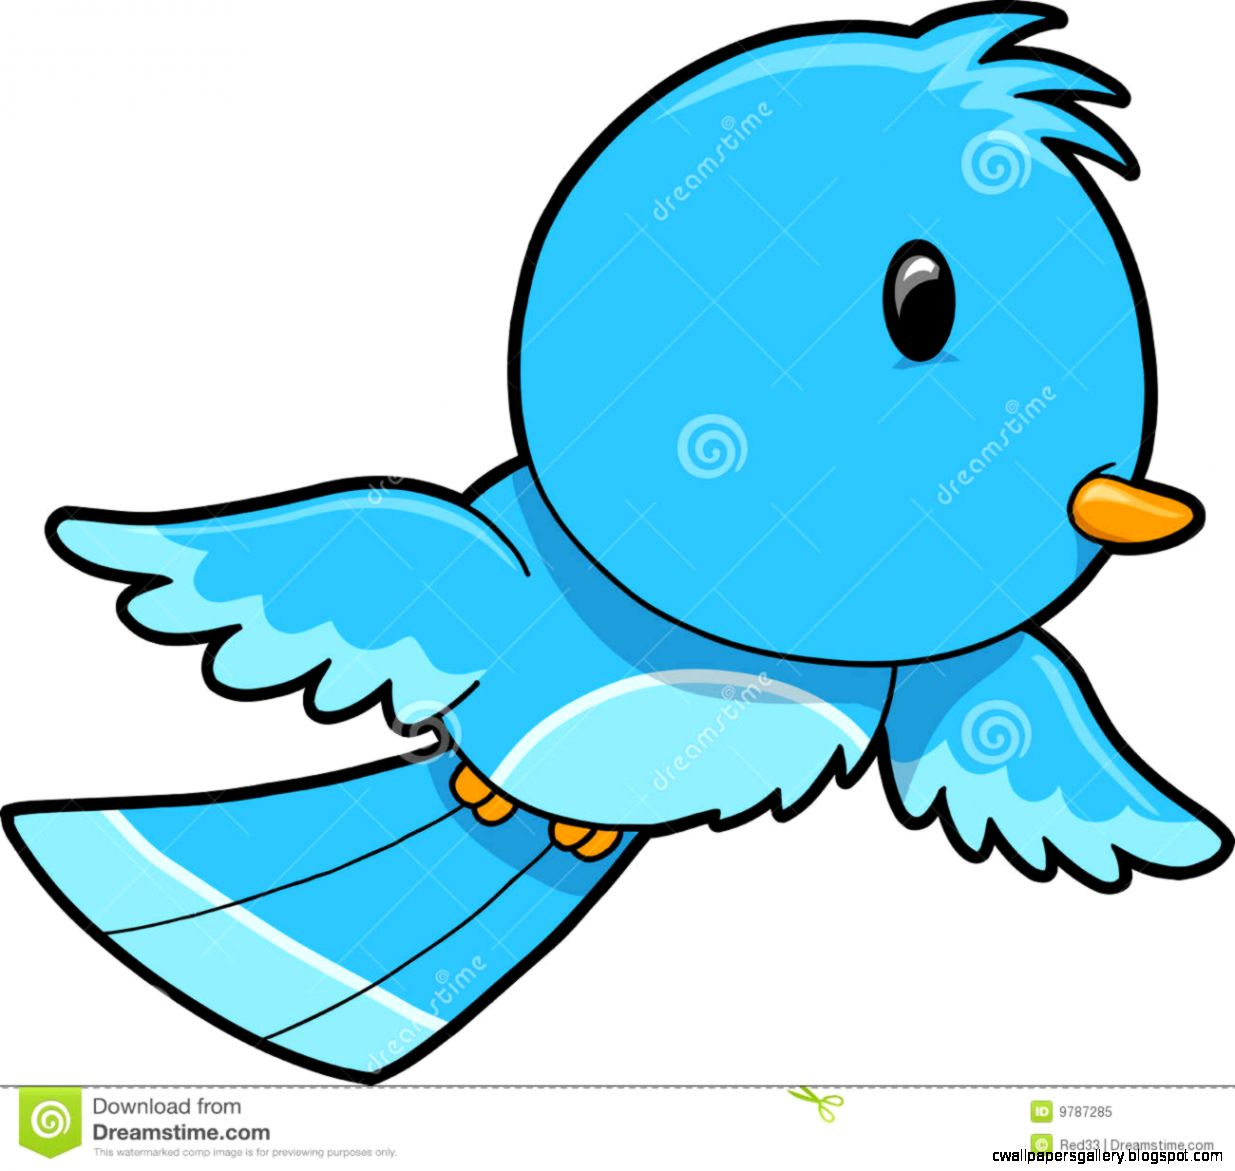 Cute Flying Bird Clip Art Pictures to Pin on Pinterest.